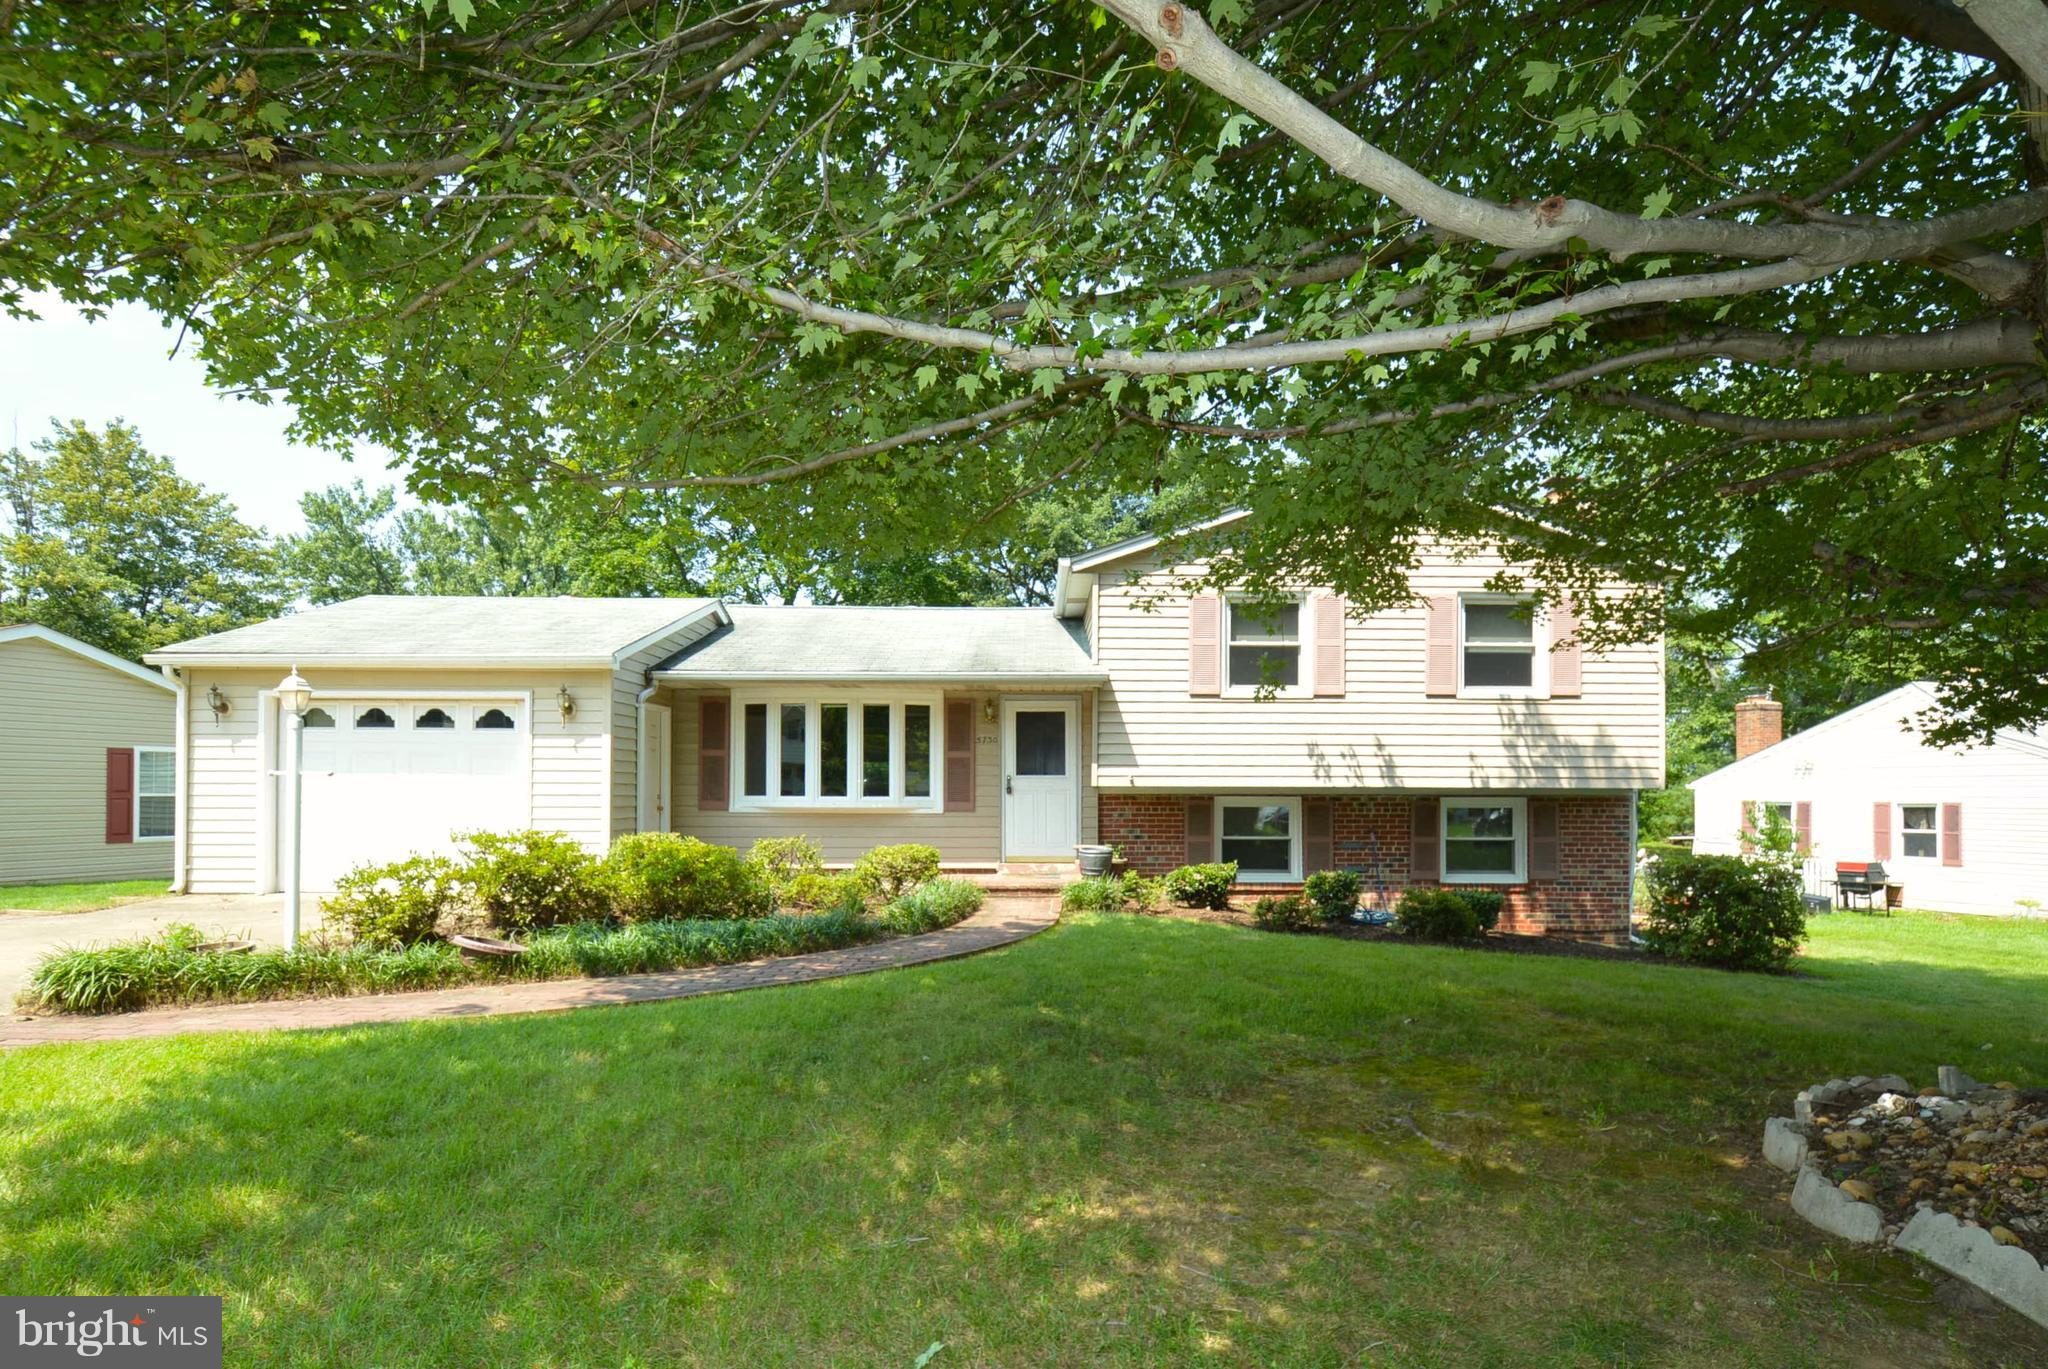 """CHARMING HOME*GOURMET KITCHEN-42"""" CABS*TOP O THE LINE STAINLESS STEEL WHIRLPOOL APPLIANCES TO INCLUDE-5 BURNER GAS RANGE-BRAND NEW MICROWAVE-REFRIGERATOR-DISHWASHER*GRANITE COUNTERS*RECESSED LIGHTING*BRAND NEW MASTER BATHROOM NEVER USED-TASTEFULLY DONE!*4 CEILING FANS*NEW WALL MOUNTED FLAT SCREEN SHARP TV CONVEYS*BAY WINDOW*NEW WINDOWS&SLIDING GLASS DOOR*MANICURED FRONT& BACK YARD !HURRY!"""